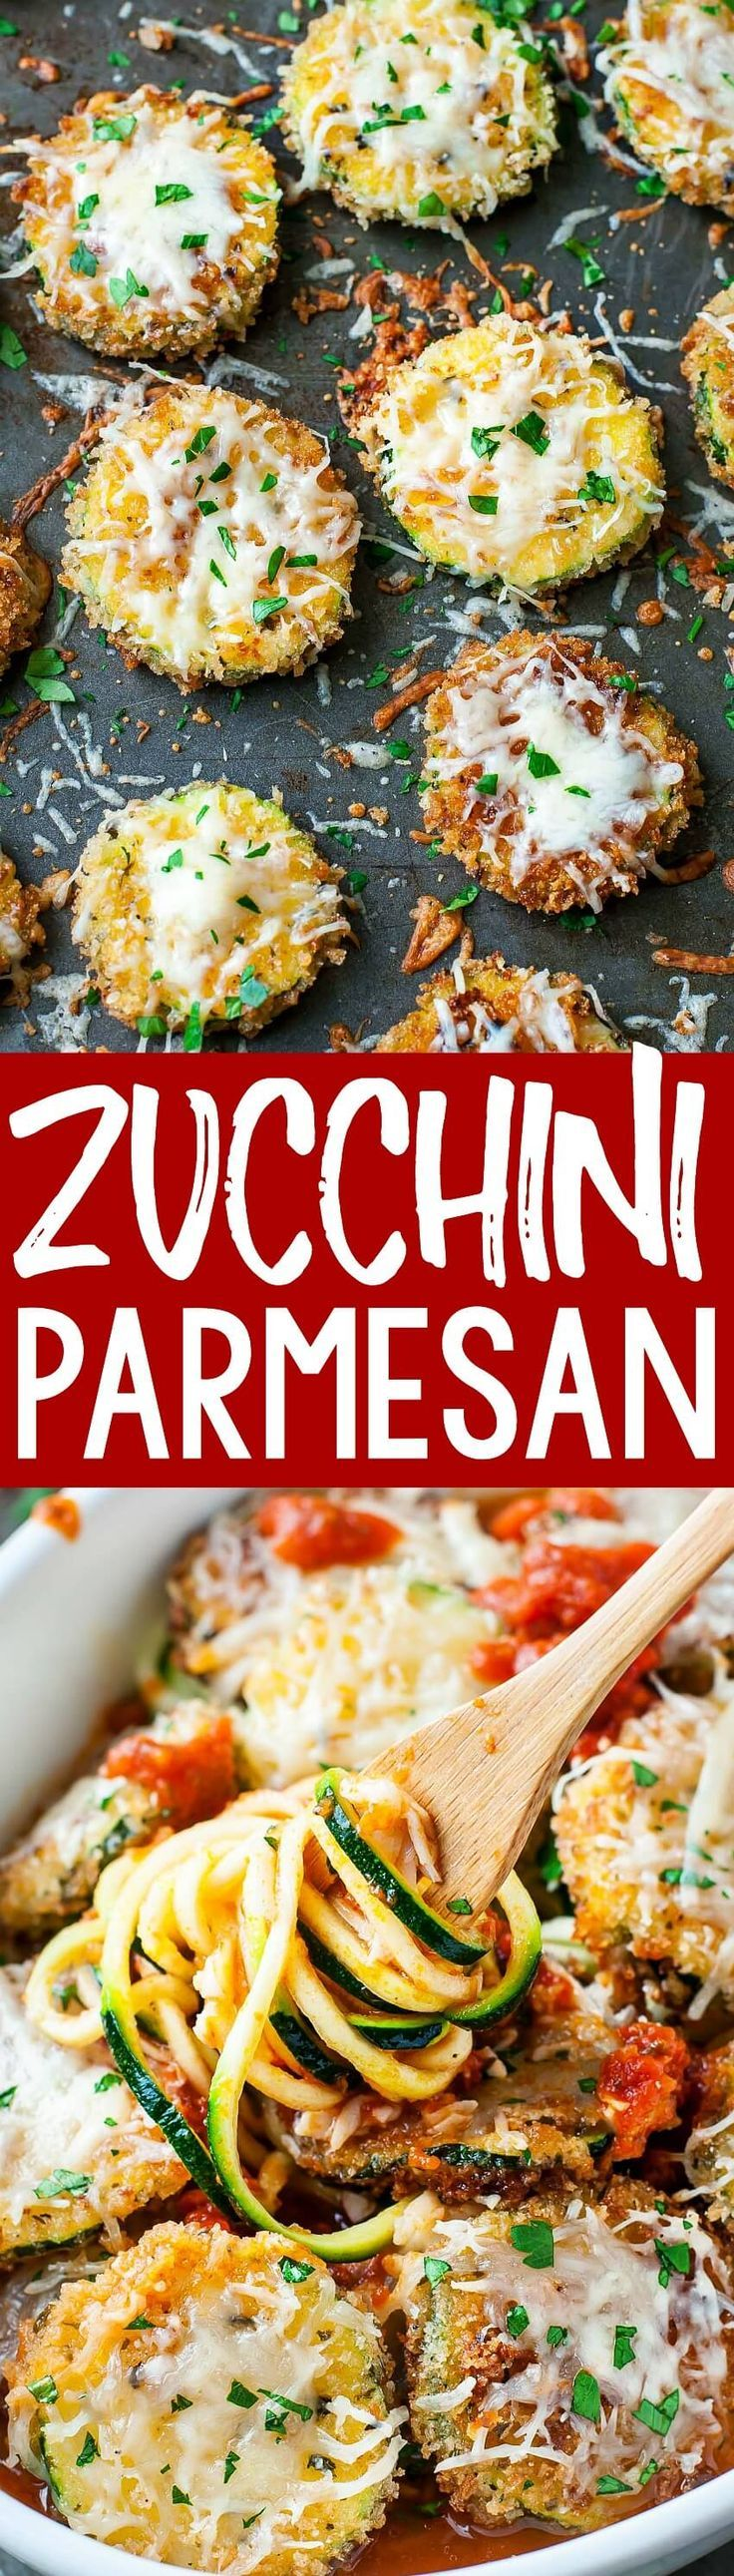 Delicious! Even my husband approves of this easy cheesy Zucchini Parmesan...